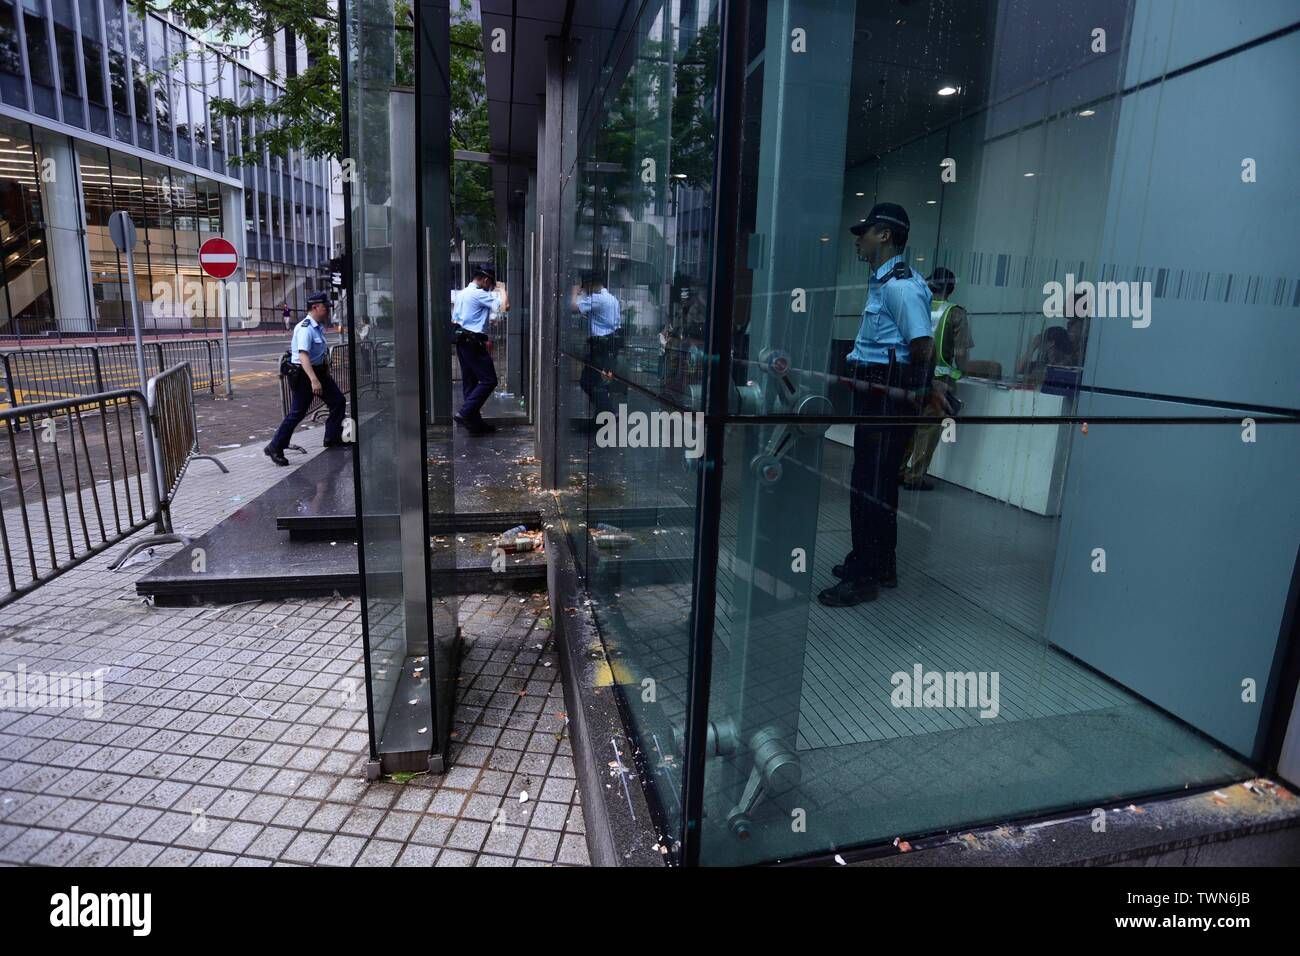 Hong Kong. 22nd June, 2019. Policemen enter Hong Kong Police Headquarters in the early morning after thousand of protesters surrounded Police Headquarter last night condemning police brutality.June-22, 2019 Hong Kong.ZUMA/Liau Chung-ren Credit: Liau Chung-ren/ZUMA Wire/Alamy Live News - Stock Image